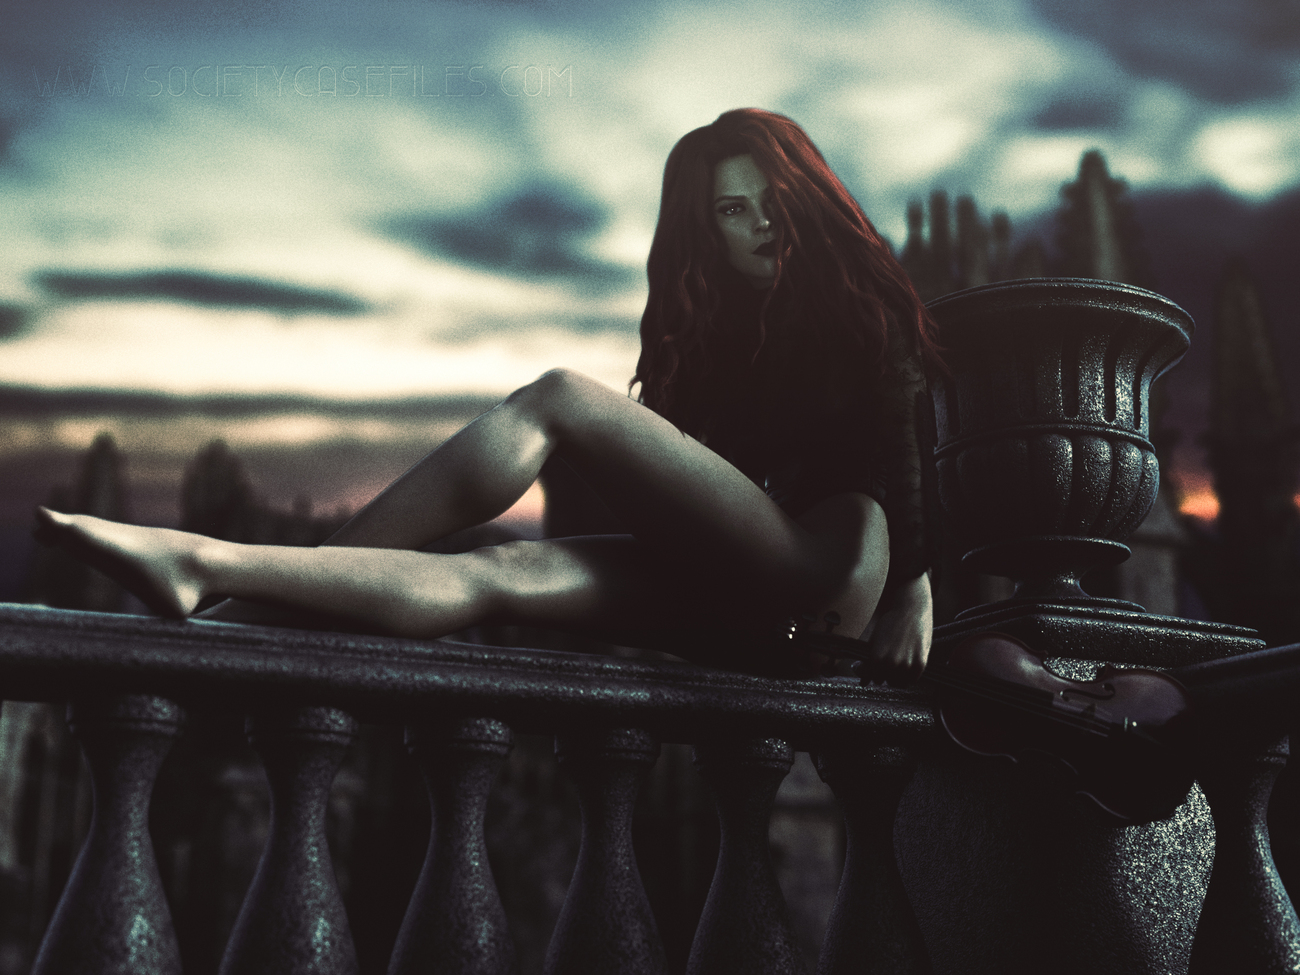 Saucy Classical by darkrepast